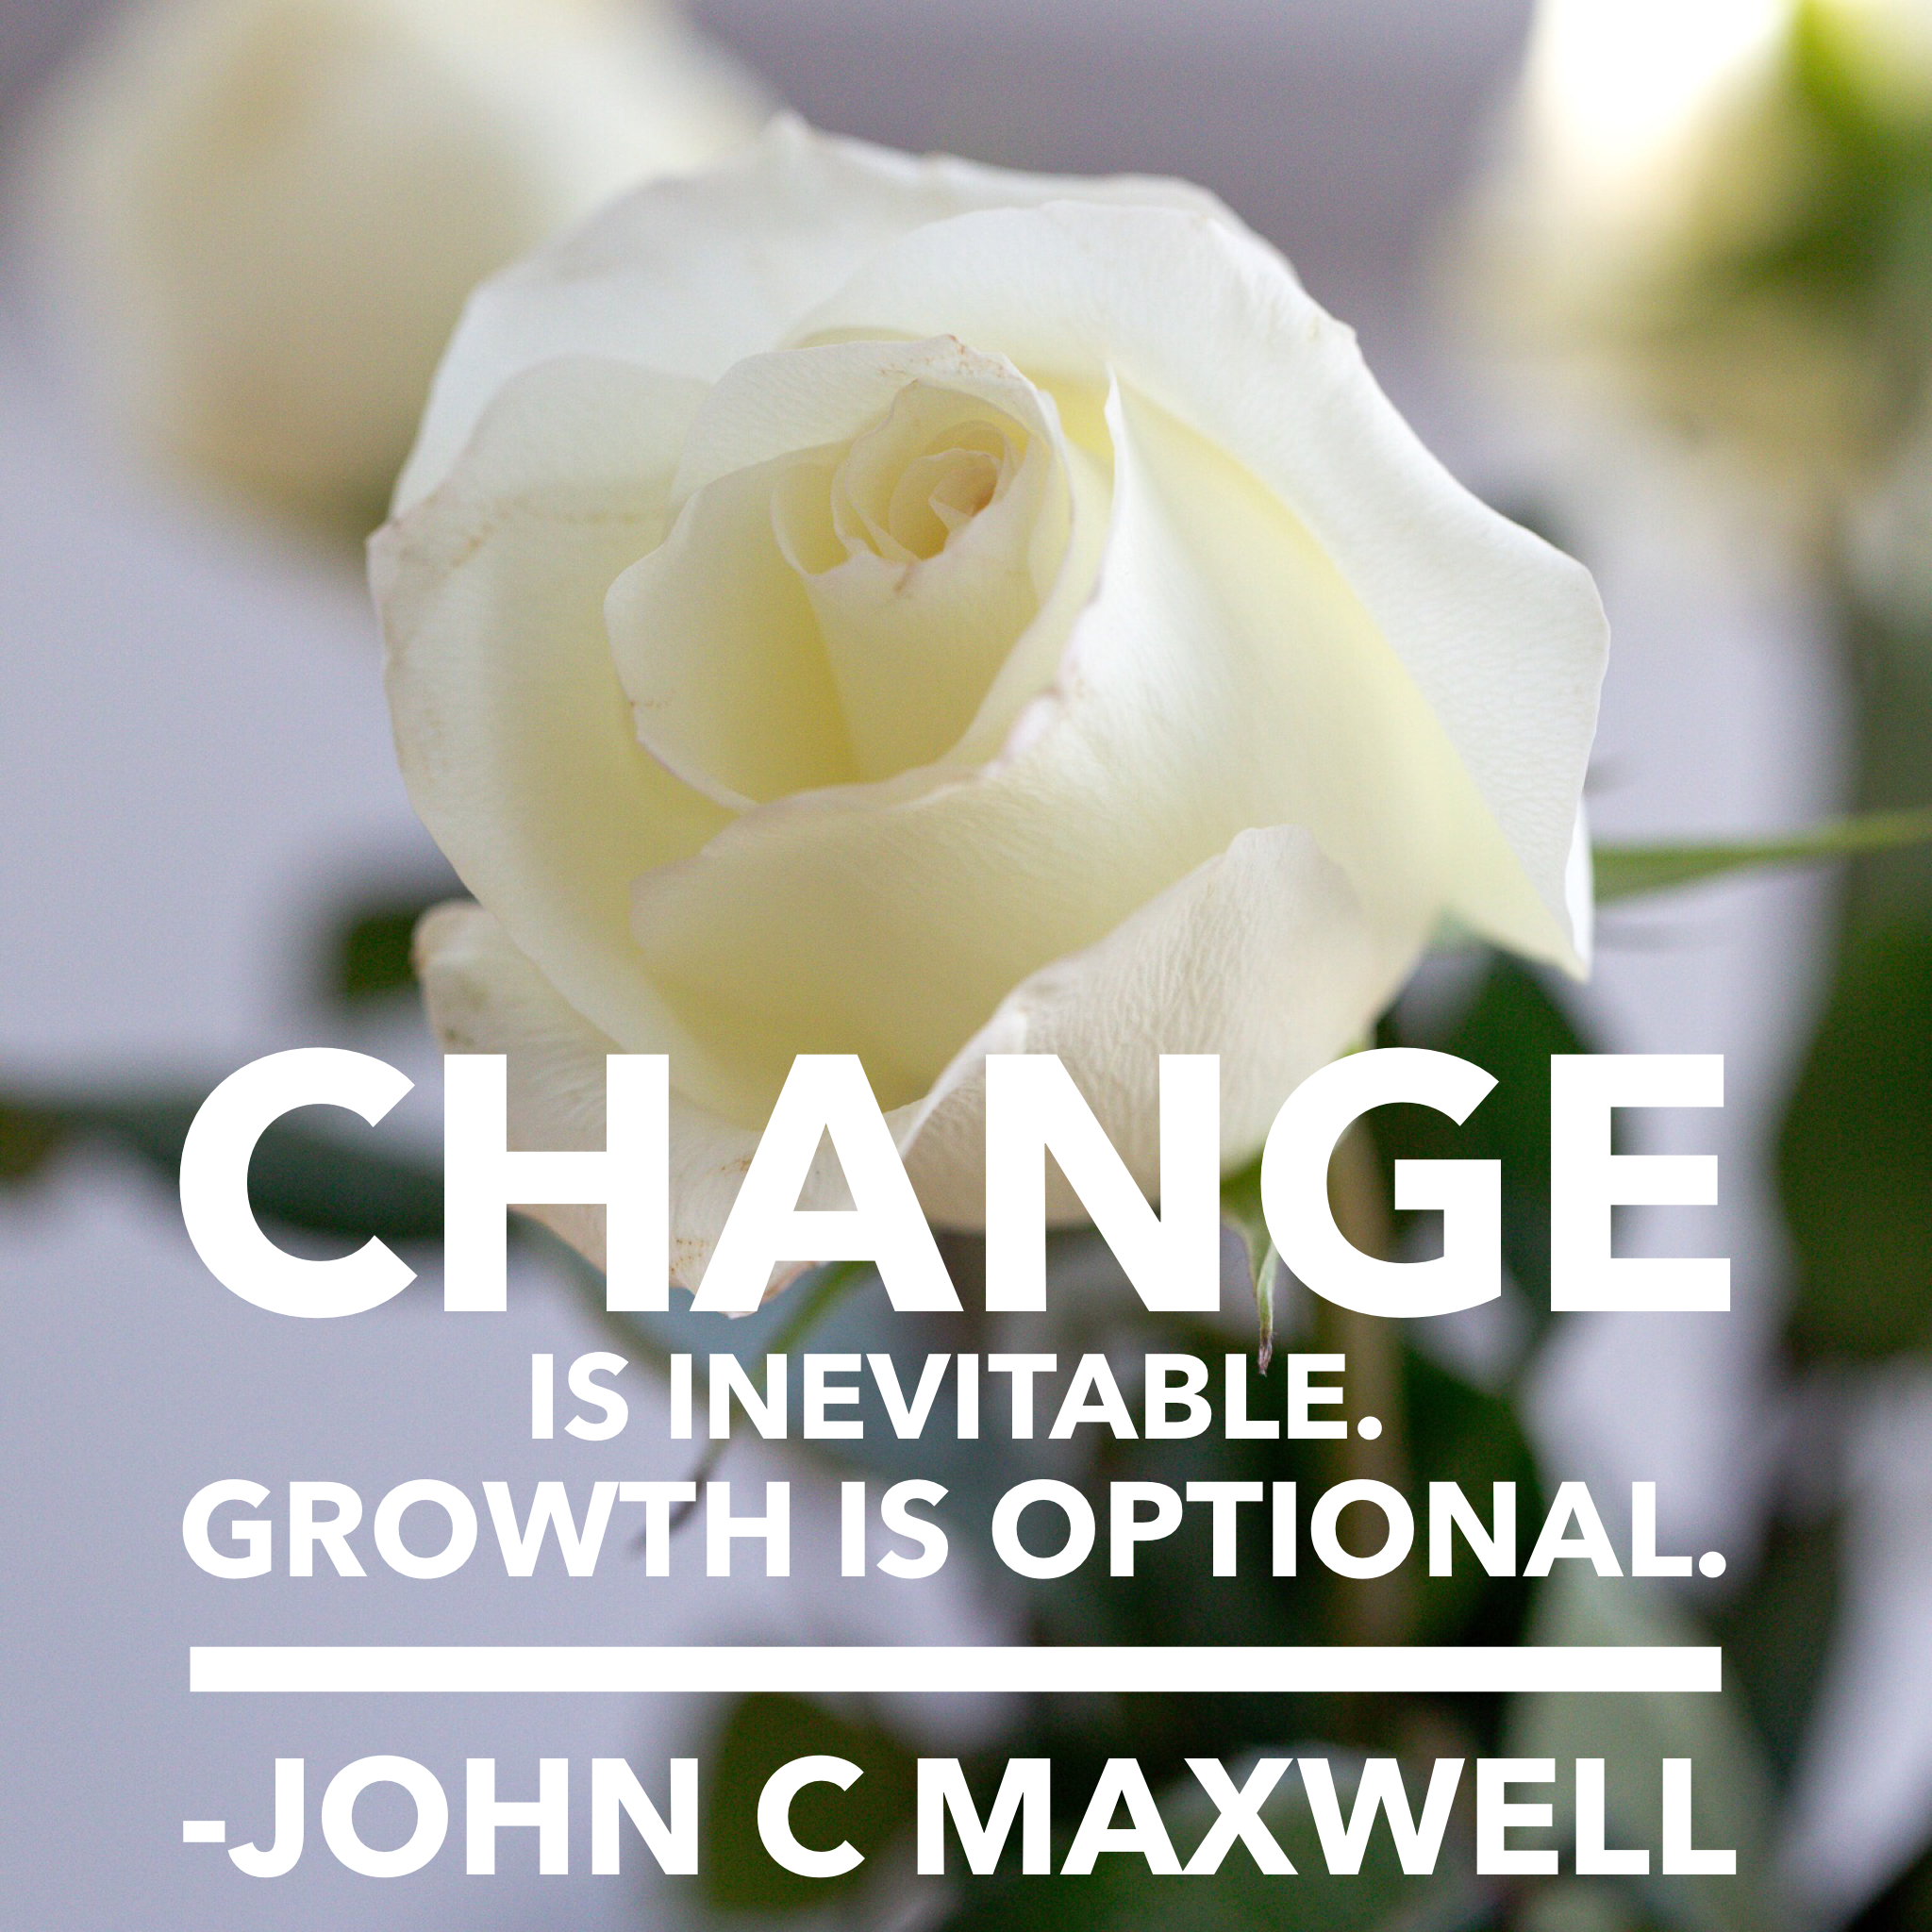 01.01.2018-change is inevitable growth is optional-corporate lifestyle photography-365 photo project challenge-brooke bryand photography_3651.PNG